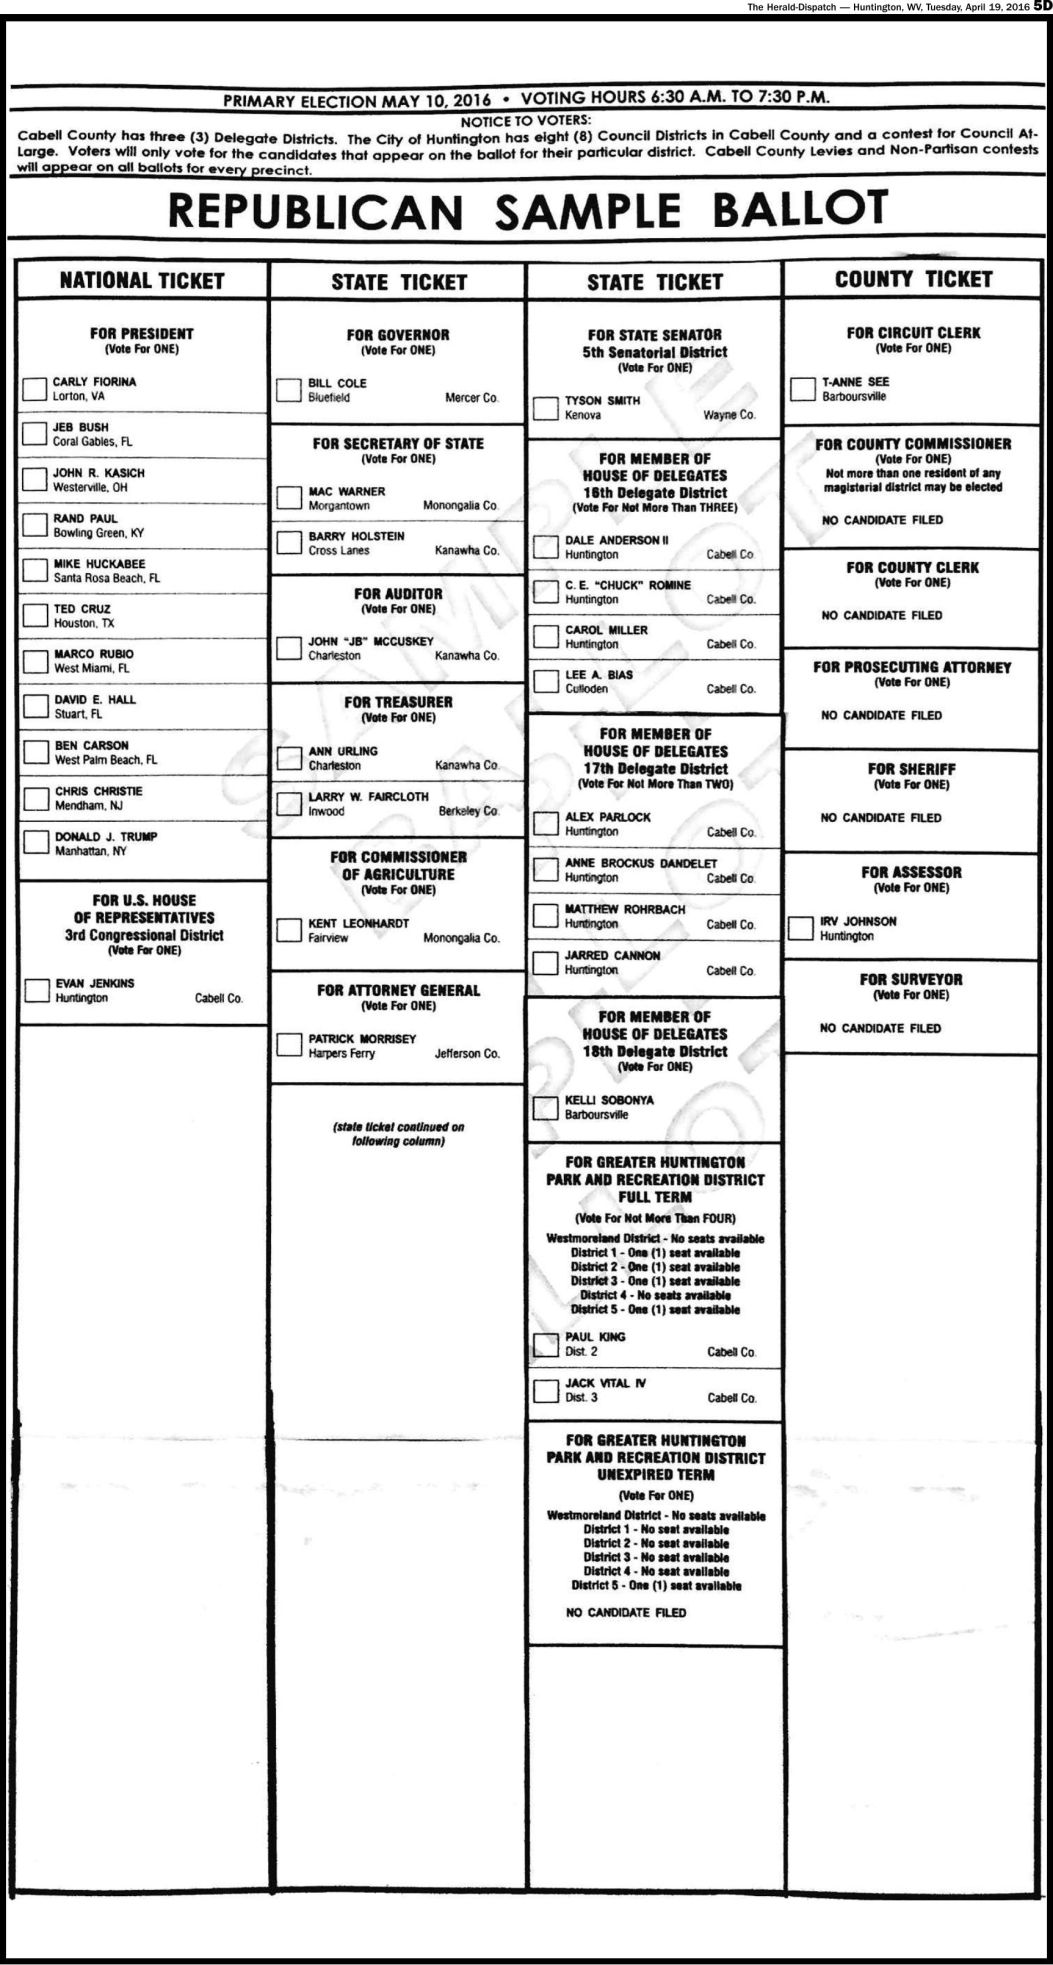 Primary 2016 Cabell County Sample Ballot | Elections | herald ...